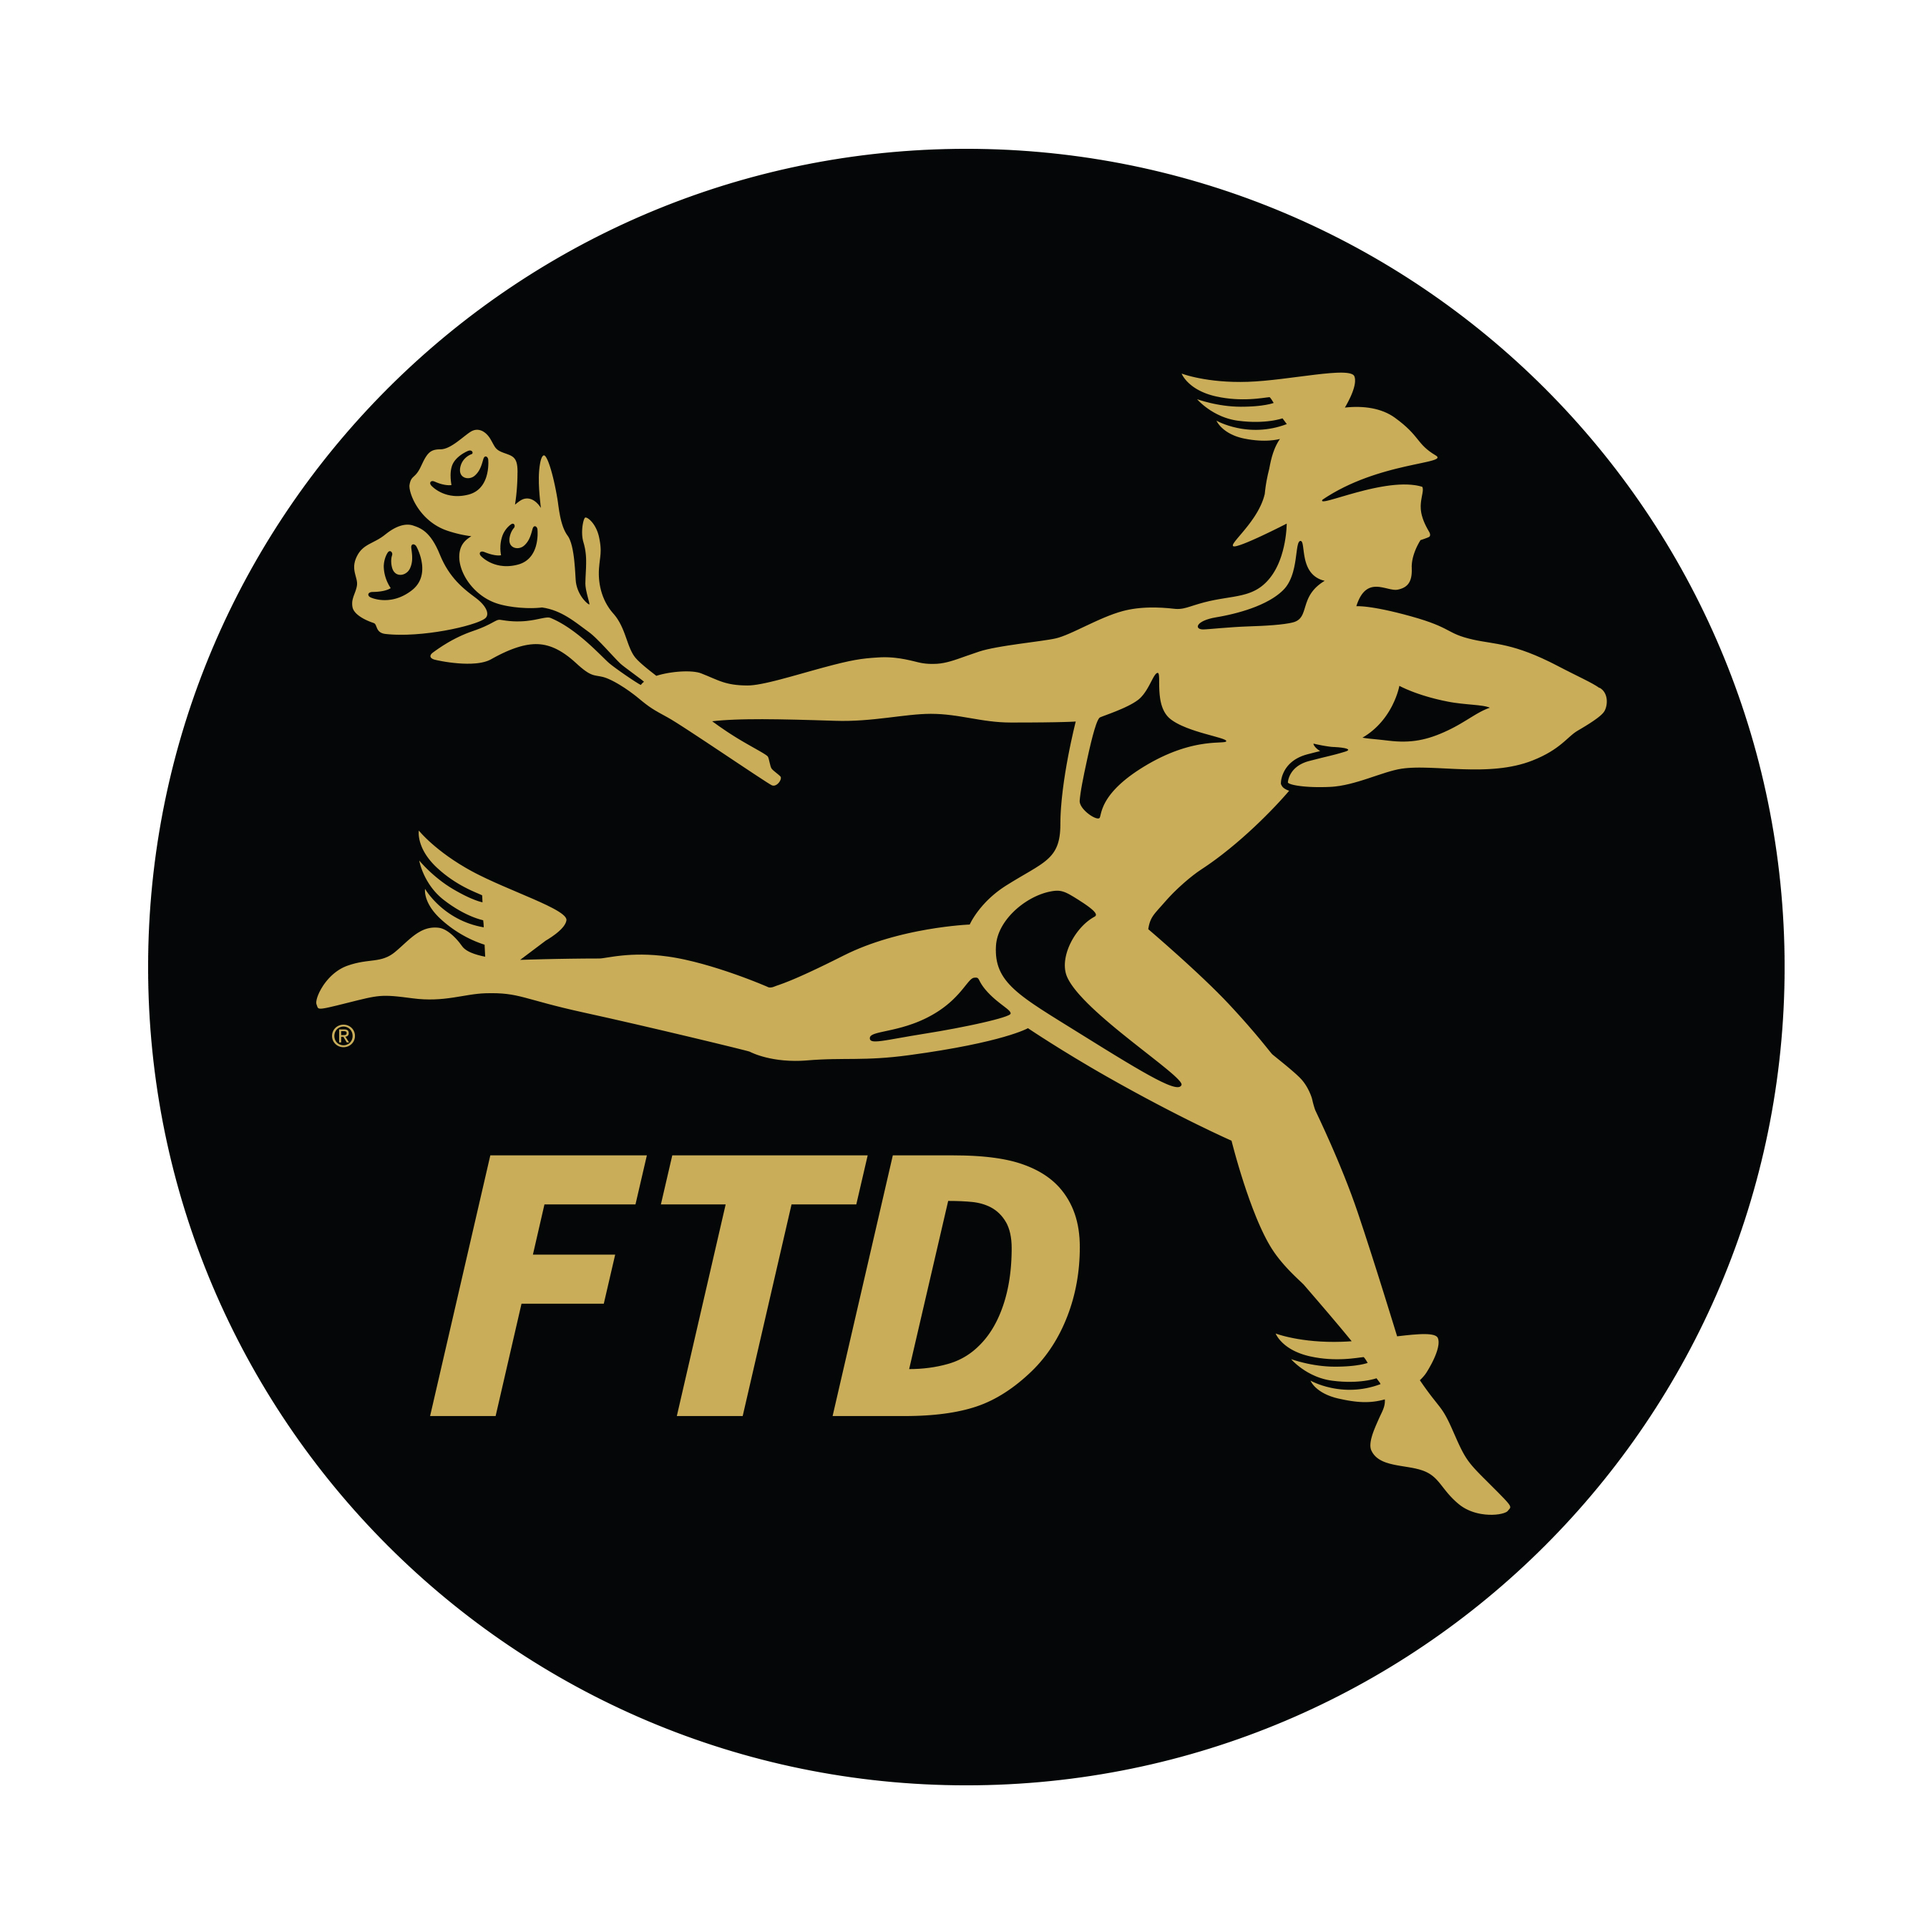 FTD and I'm Sorry to Hear Announce Flower Partnership